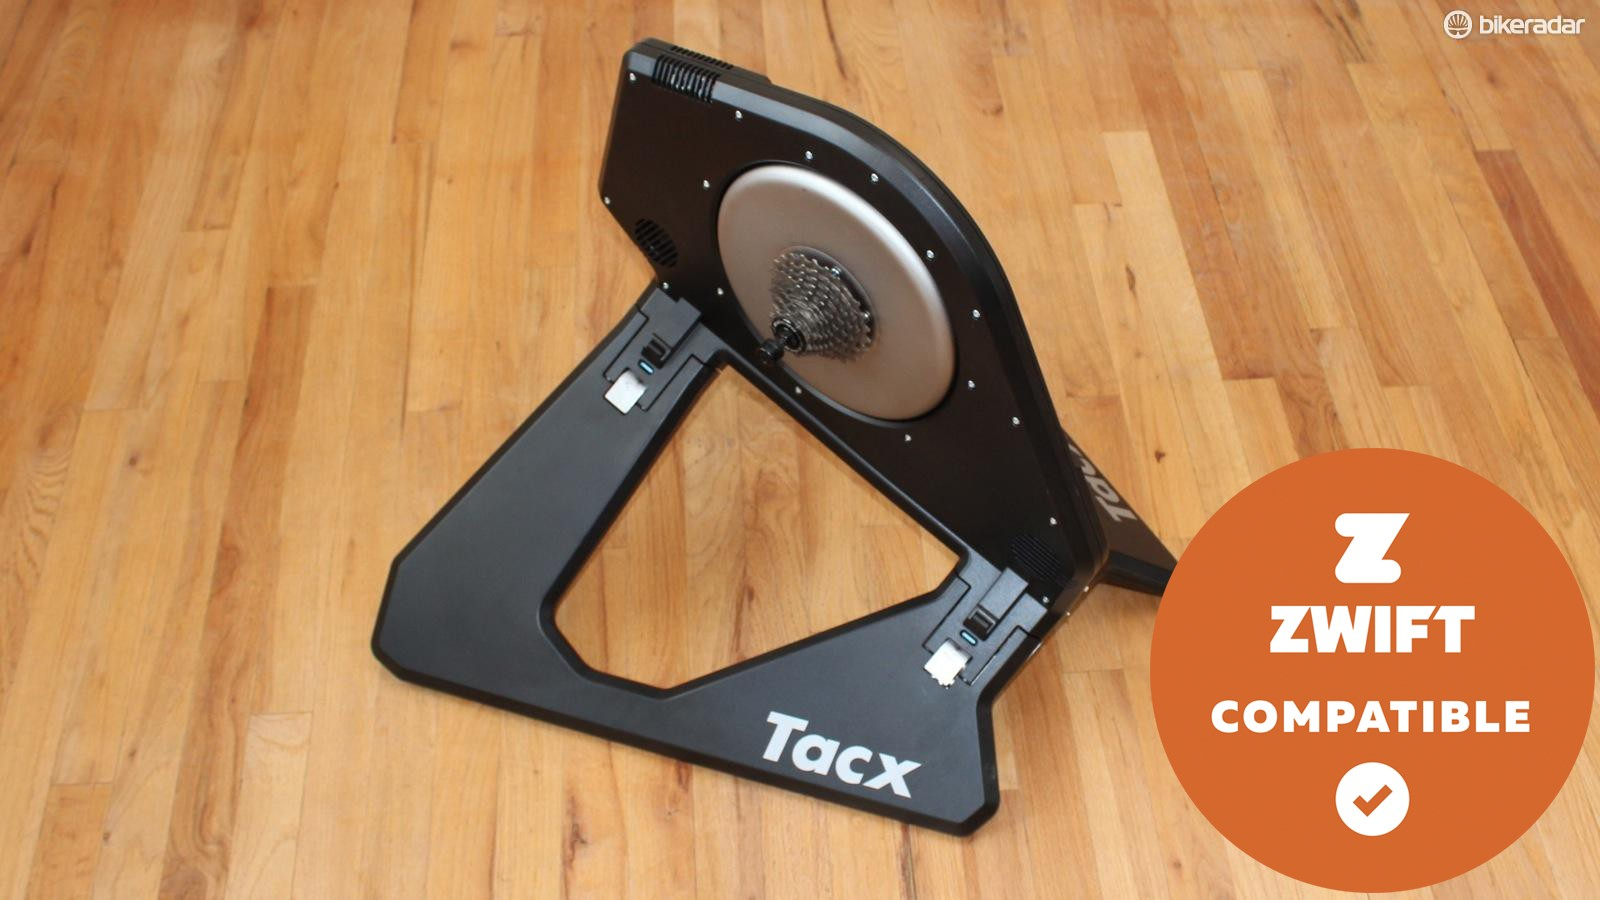 The Tacx Neo provides a realistic indoor training experience